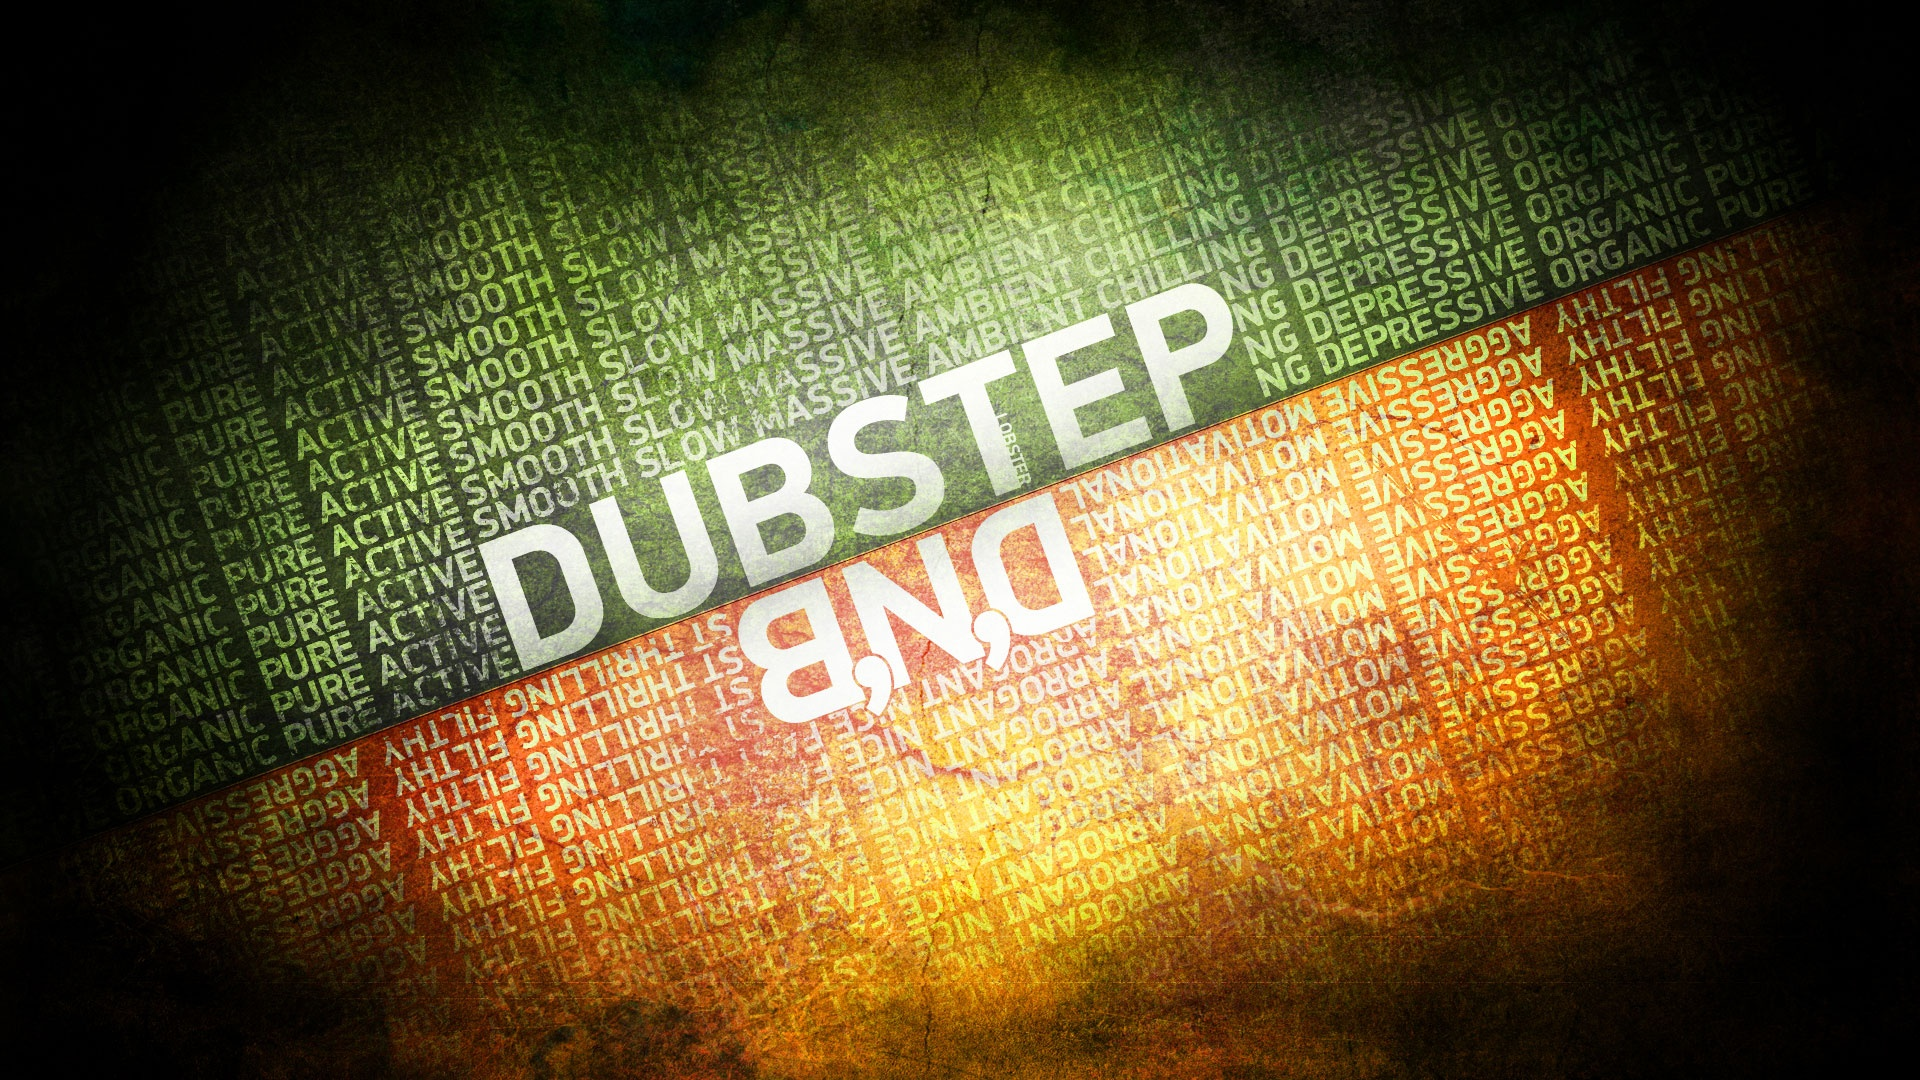 abstract dubstep wallpaper 1080p - photo #26